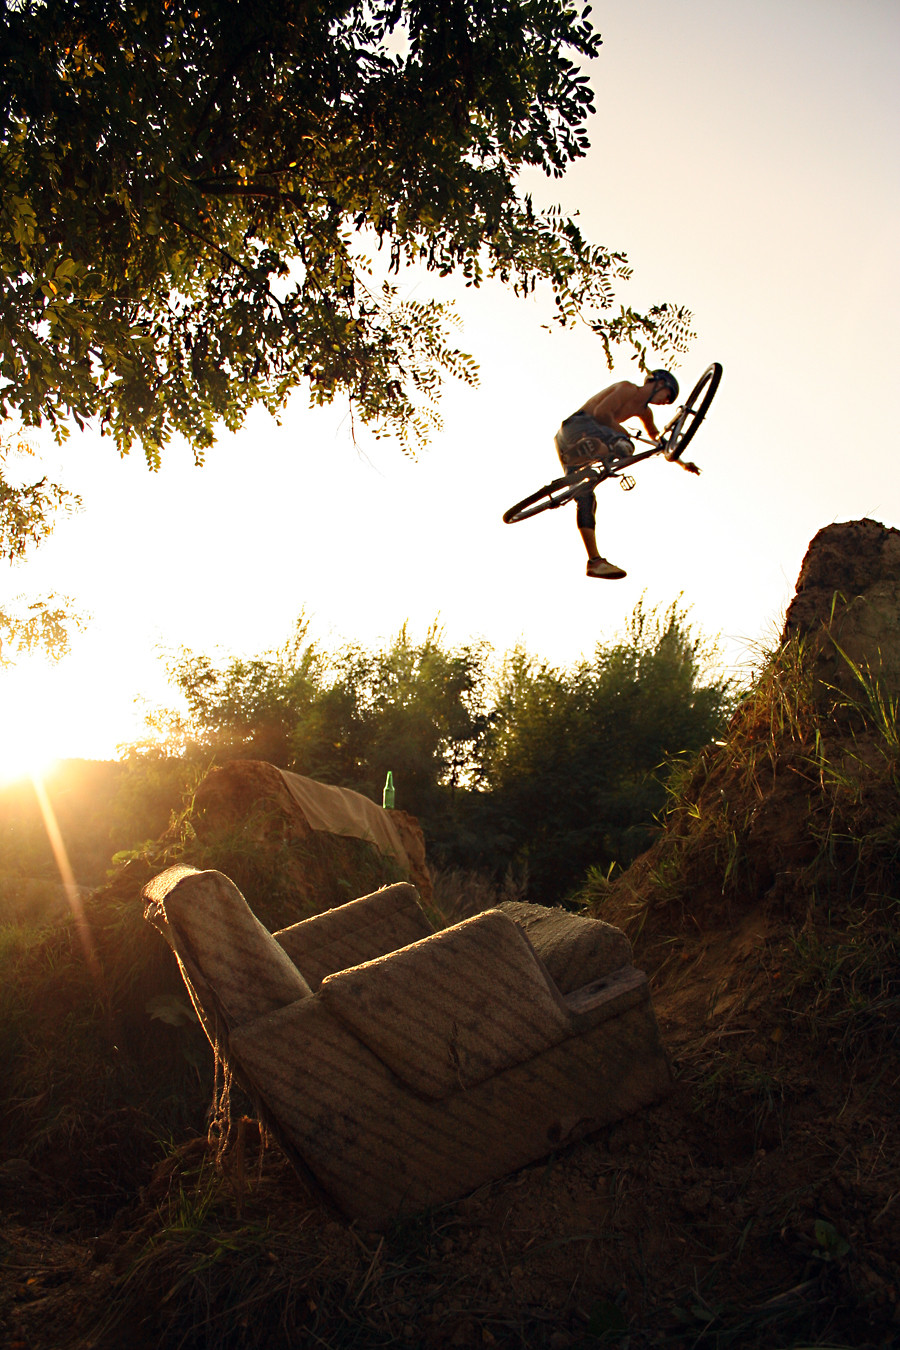 sunset - B Gabo - Mountain Biking Pictures - Vital MTB